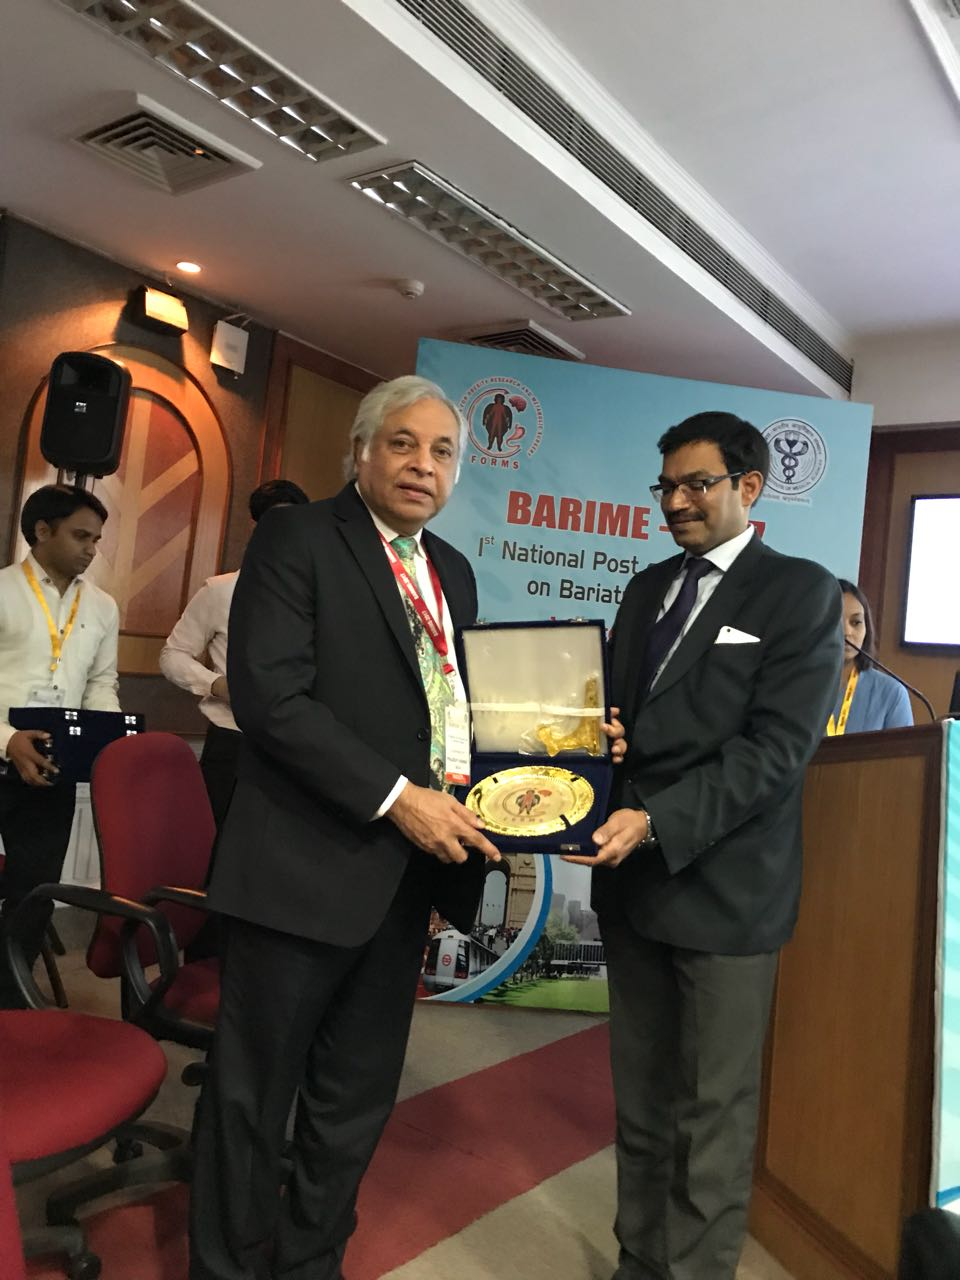 Award from Foundation For Obesity Research and Metabolic Surgery presented by Professor Sandeep Agarwal of AAIMS department of Surgery at BARIME 2017 in Delhi, India